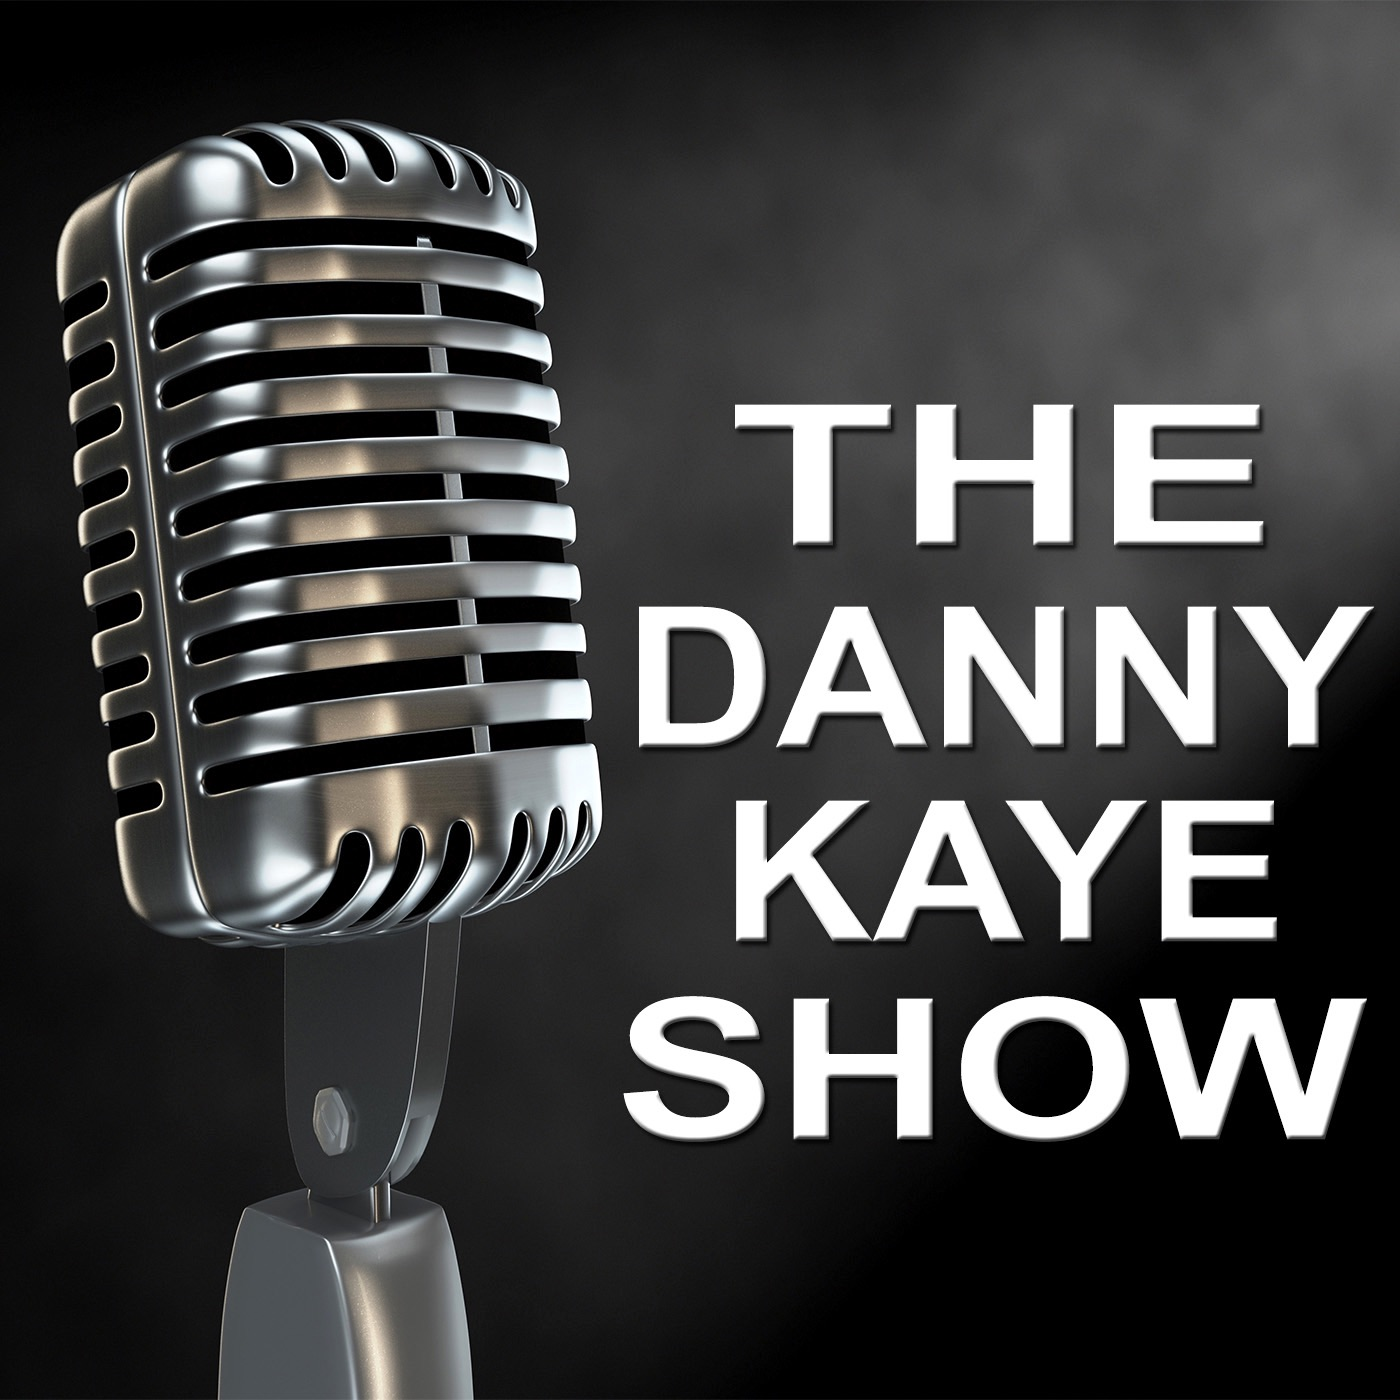 The Danny Kaye Show - Old Time Radio Show